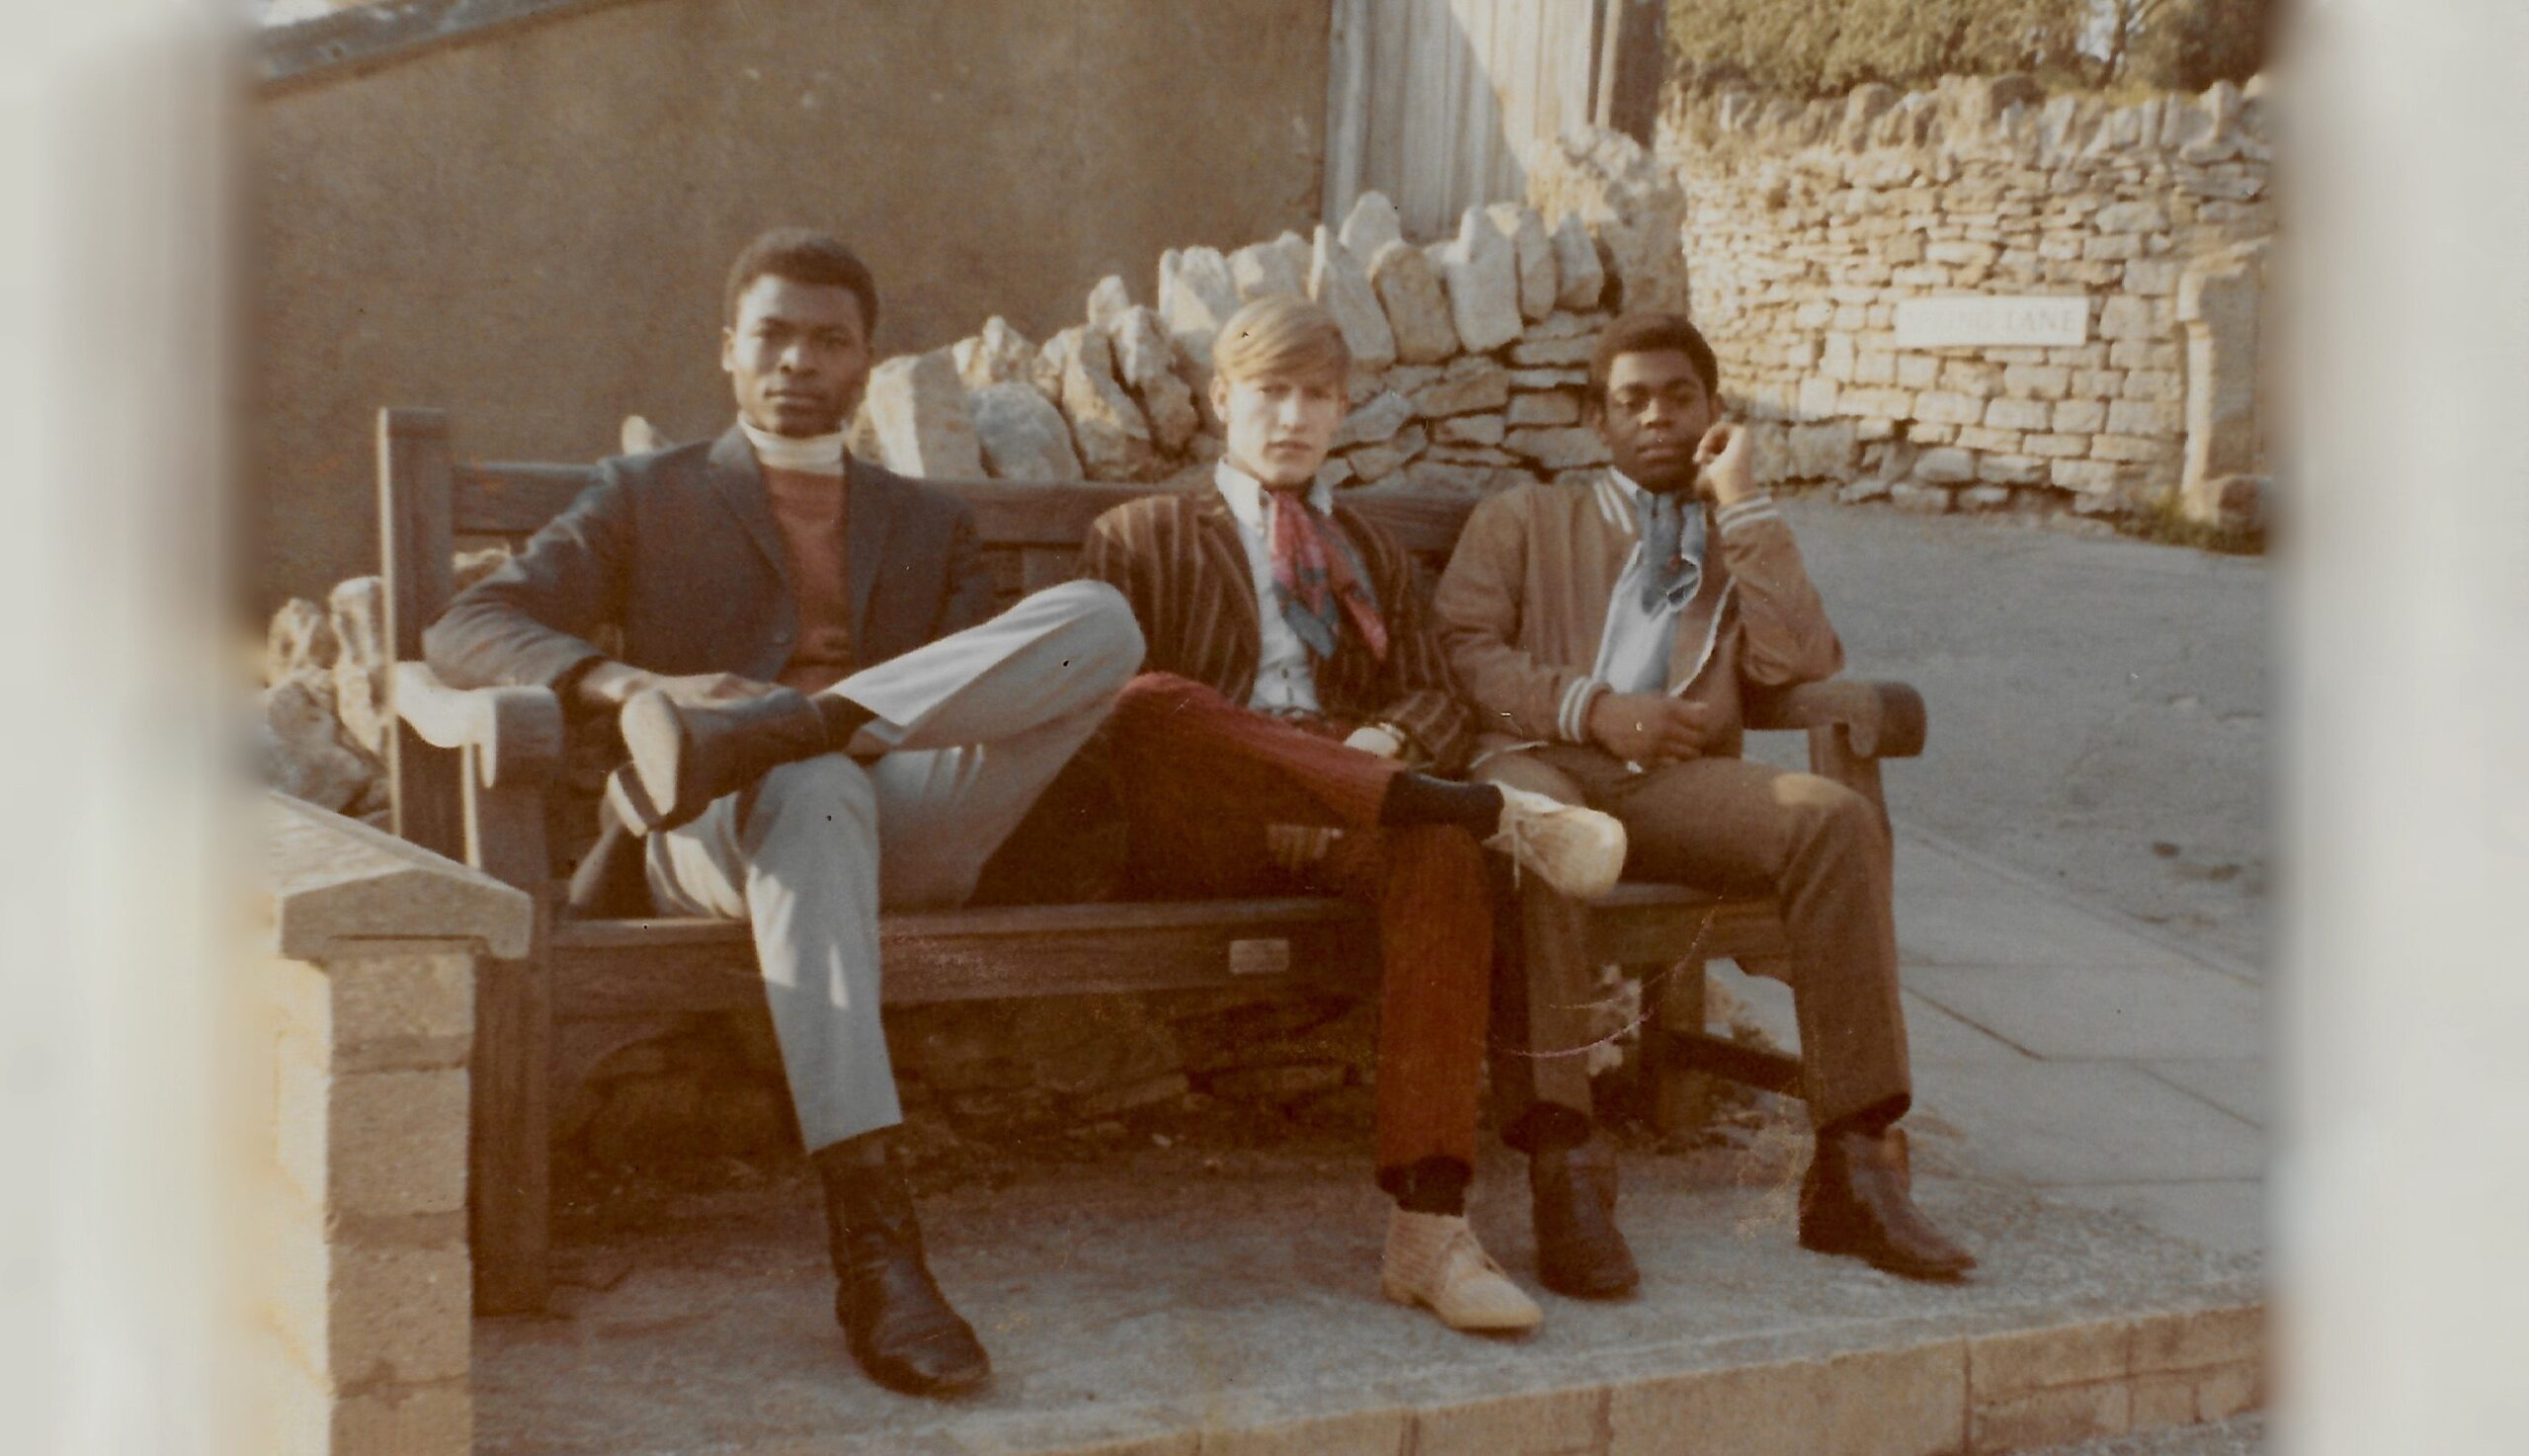 Three Young Men on a Bench by Dan Guthrie